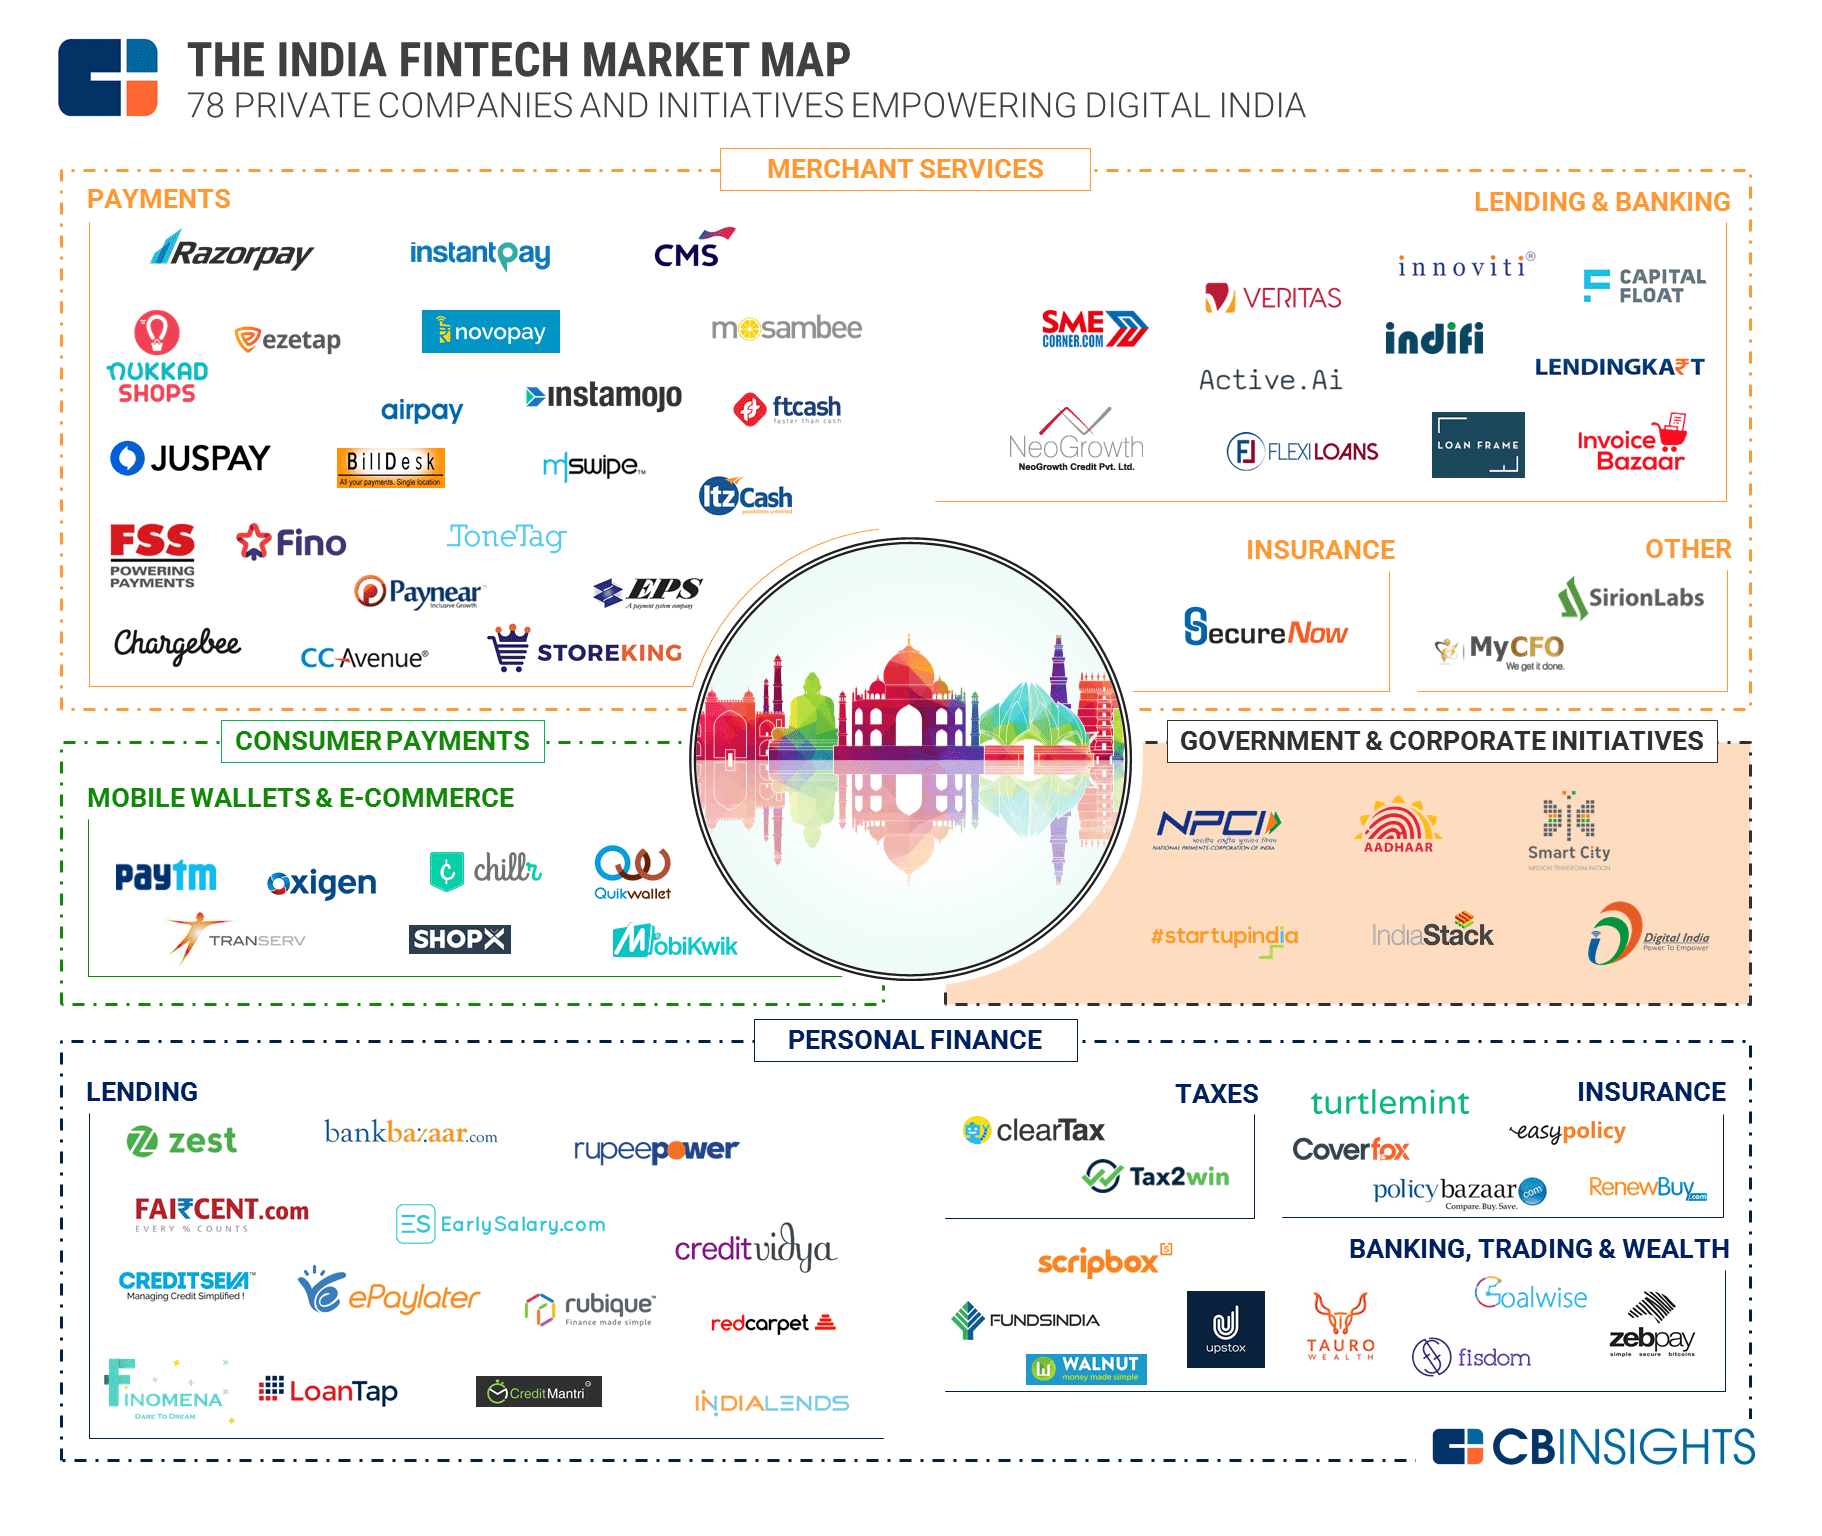 Know Your Industries: 100+ Market Maps Covering Fintech, CPG, Auto